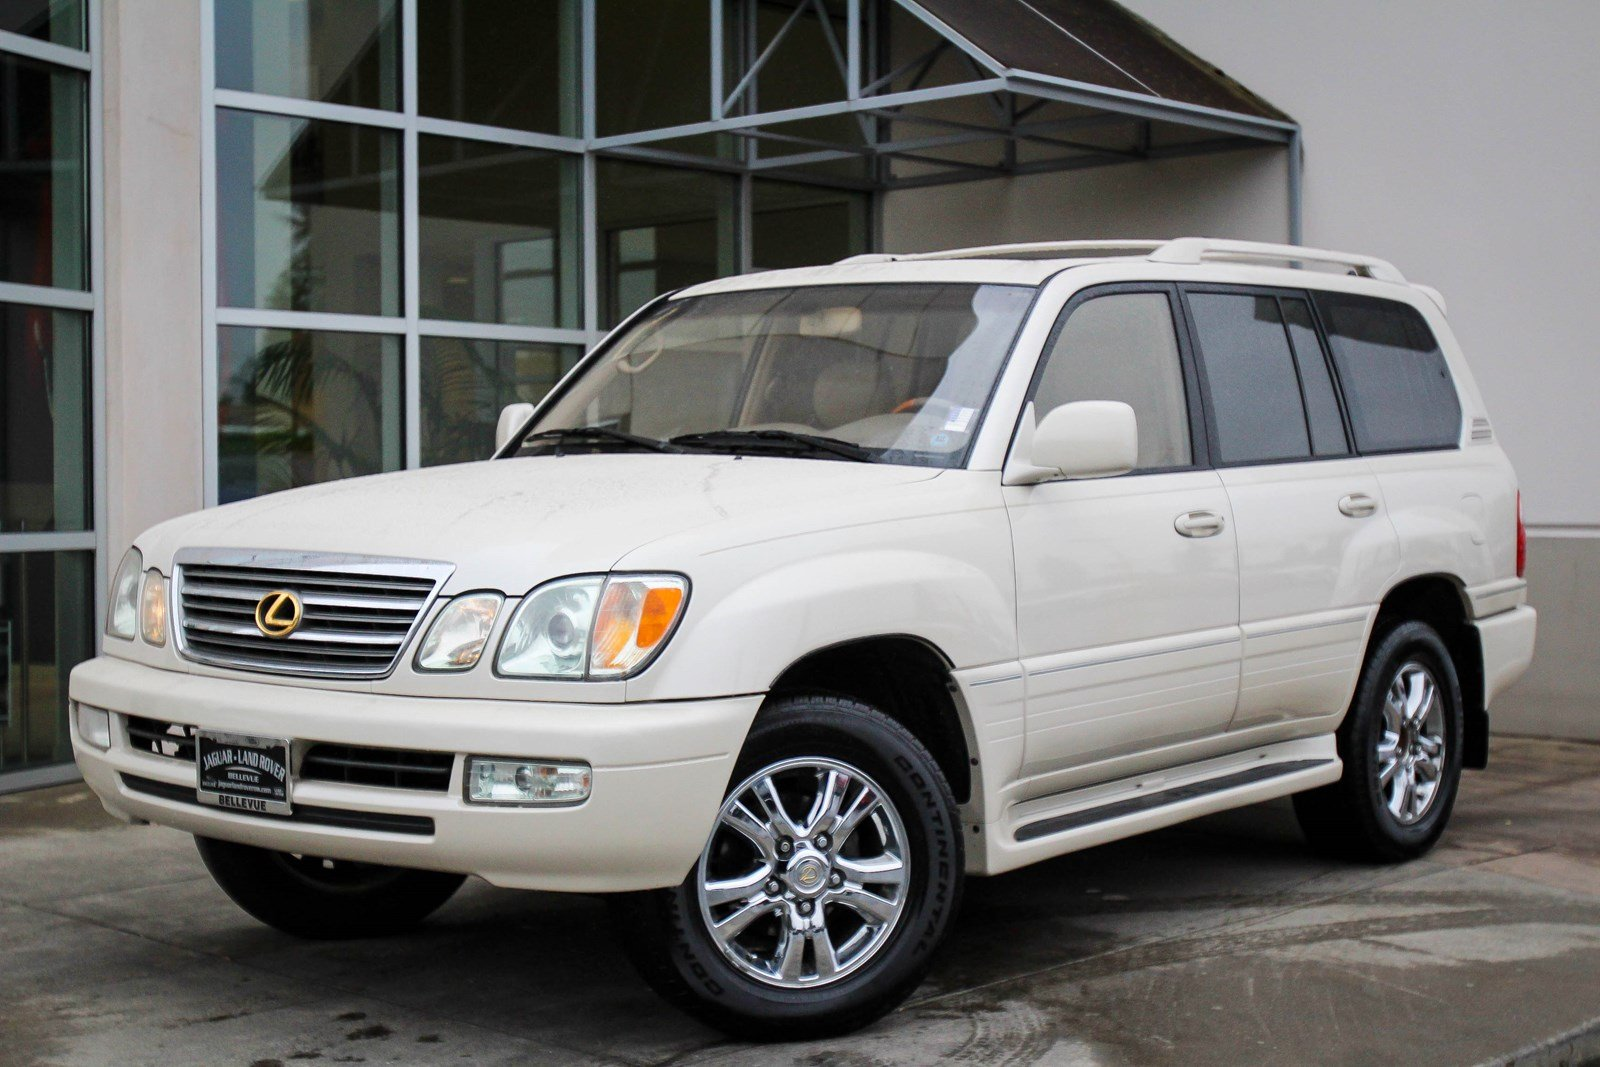 Pre-Owned 2003 Lexus LX 470 4DR SUV